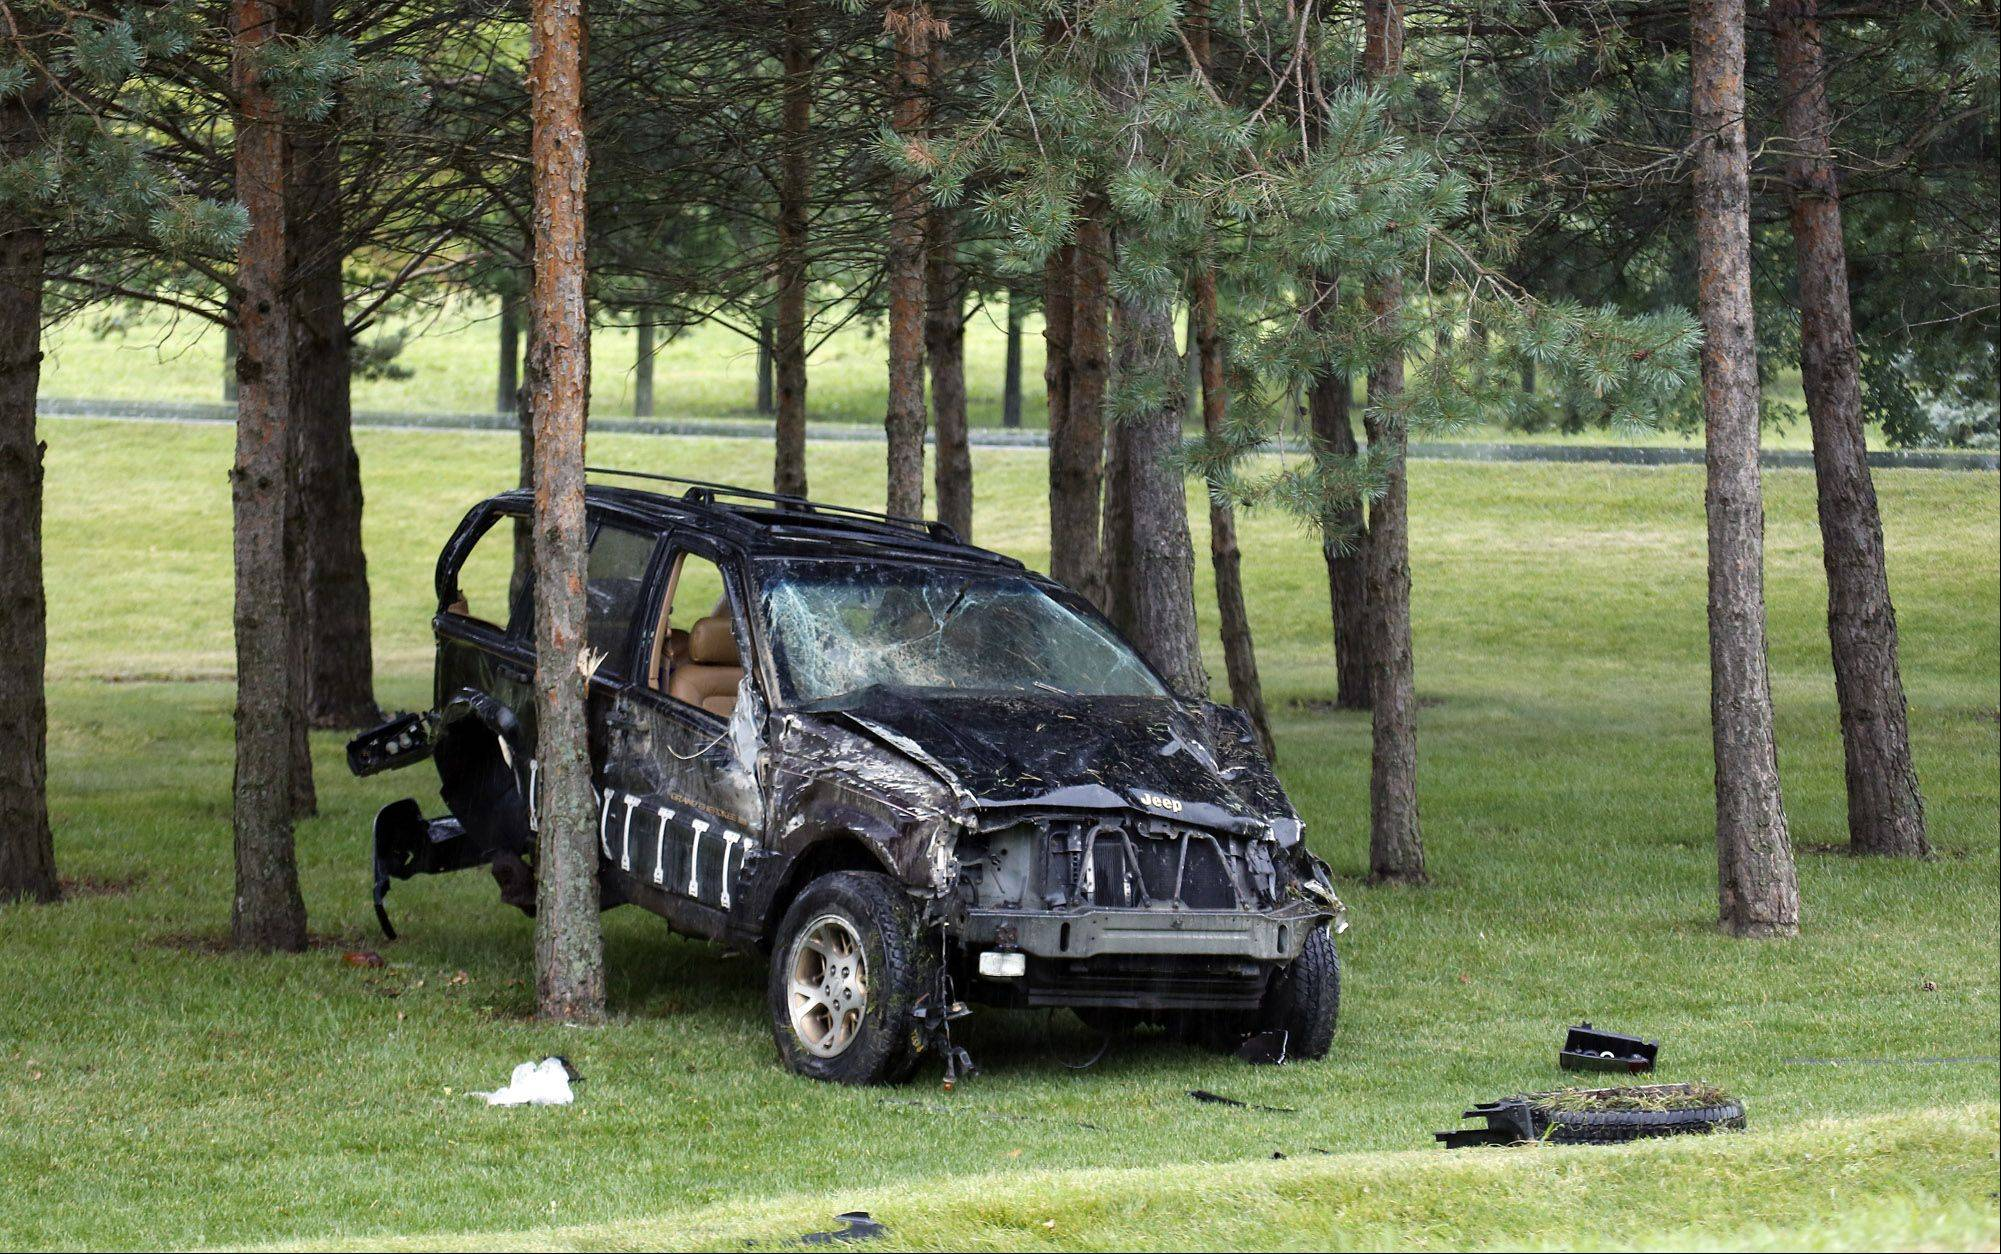 The 84-year-old Algonquin man driving this sport utility vehicle on Marengo Road near Huntley Thursday, was killed in a crash after his vehicle rear-ended a pickup truck, rolled over and hit a tree, police said. The truck's driver, a 70-year-old man from Huntley, was not injured. Autopsy and toxicology results are pending.